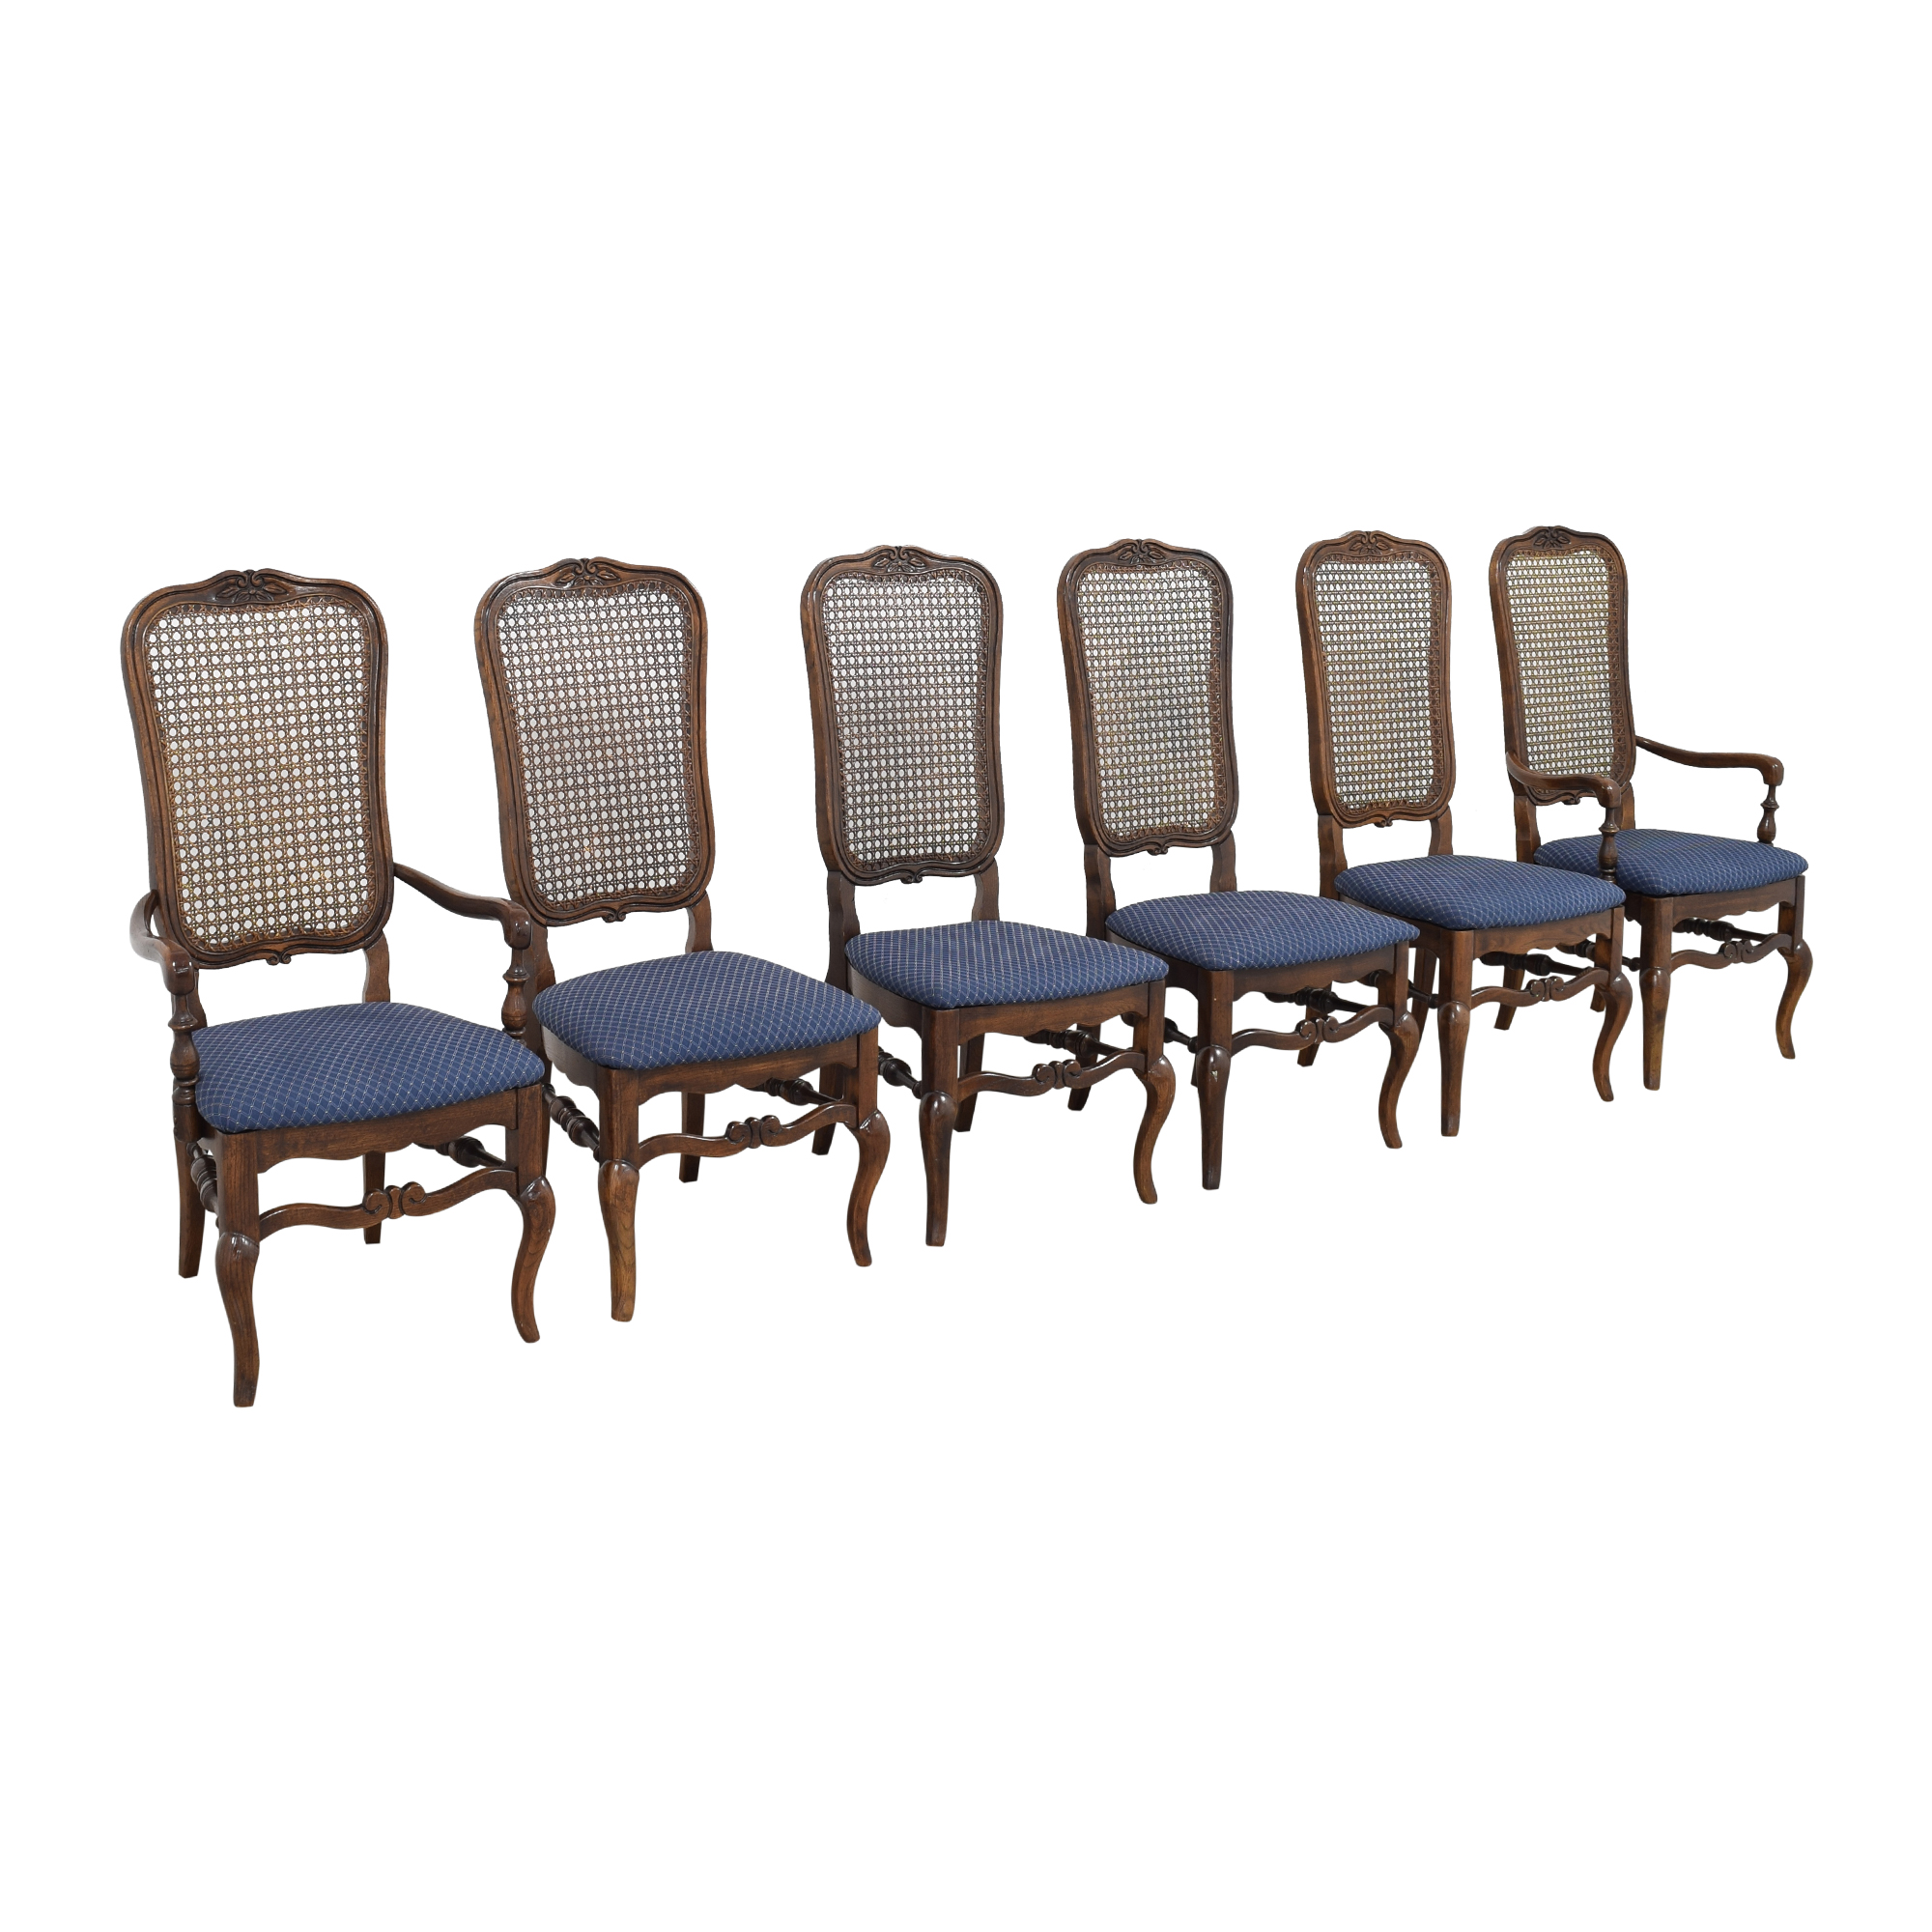 Thomasville Thomasville Upholstered Dining Chairs nyc